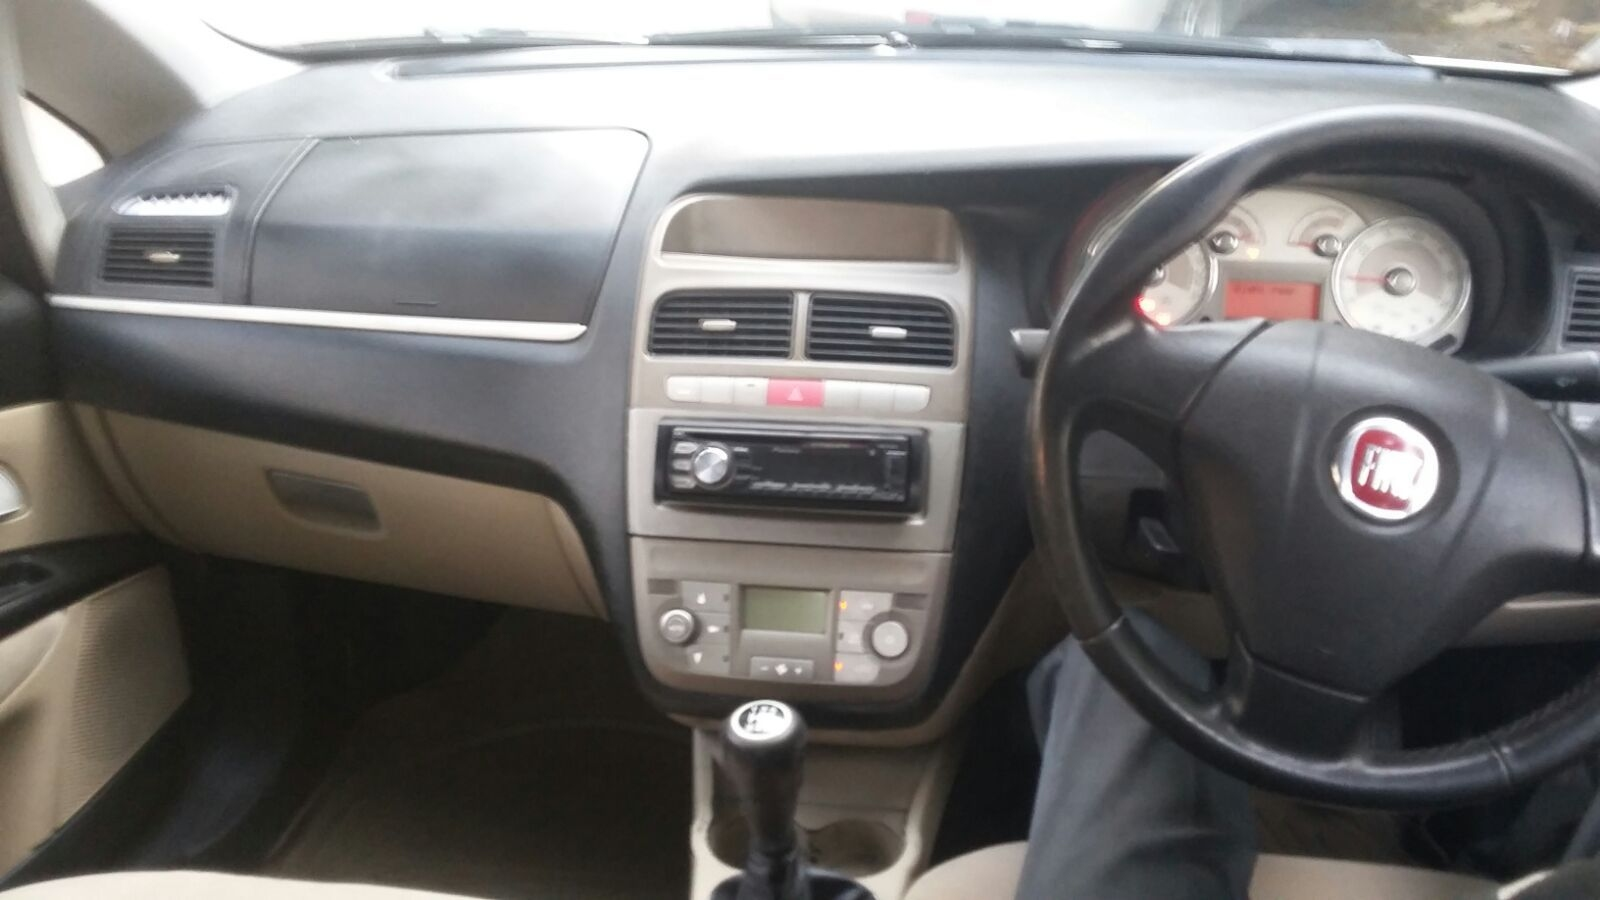 21 used fiat car in ahmedabad @ best price | droom